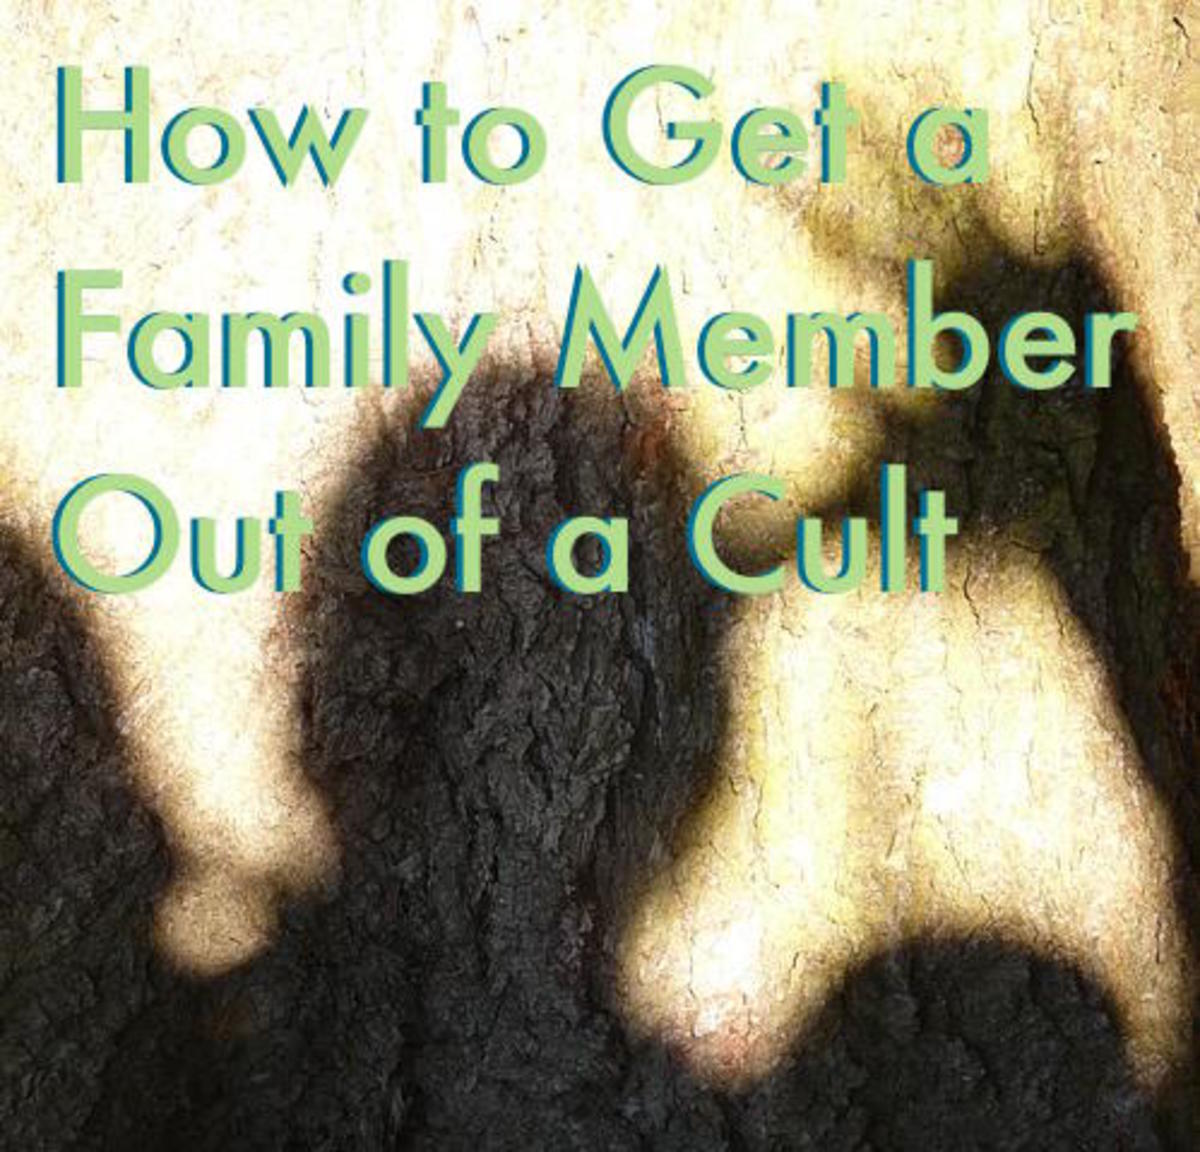 How to Help Friends and Family Get out of a Cult